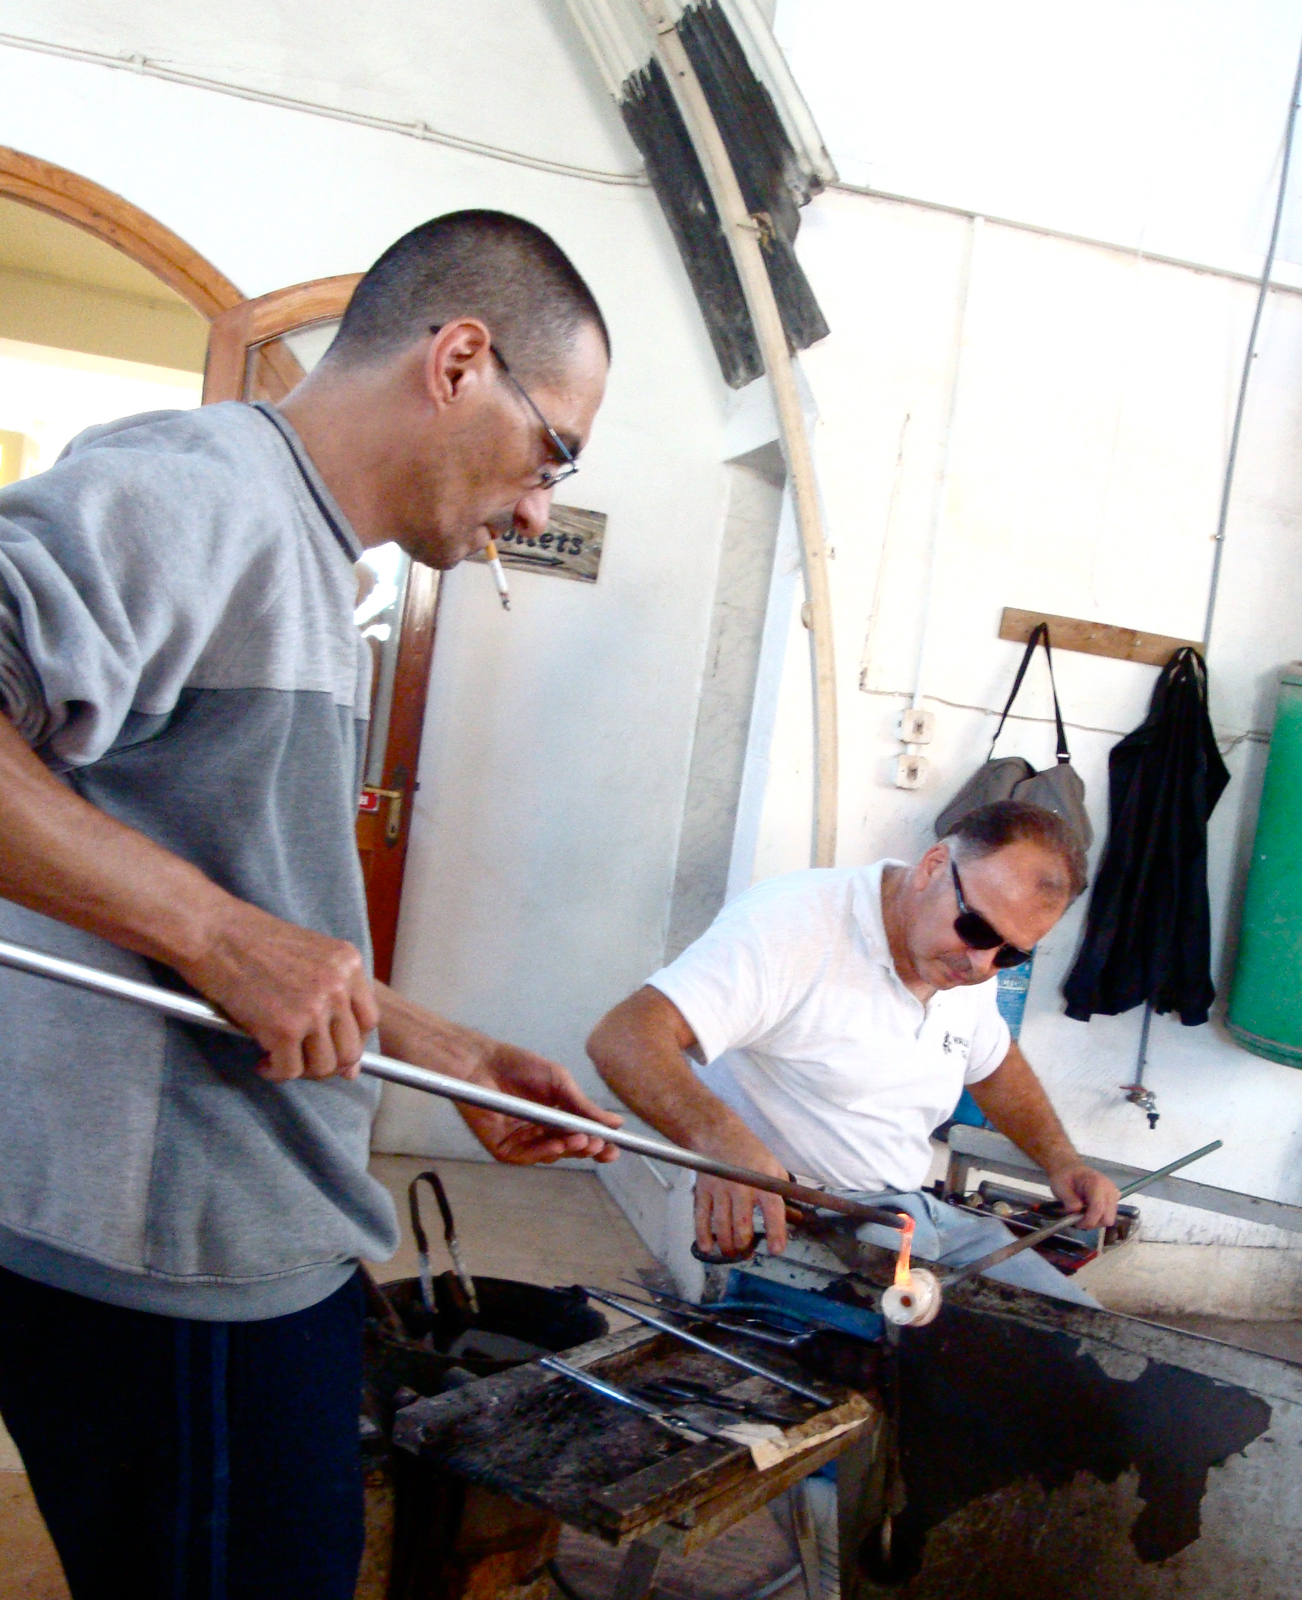 Glassblowers at the Valetta shop